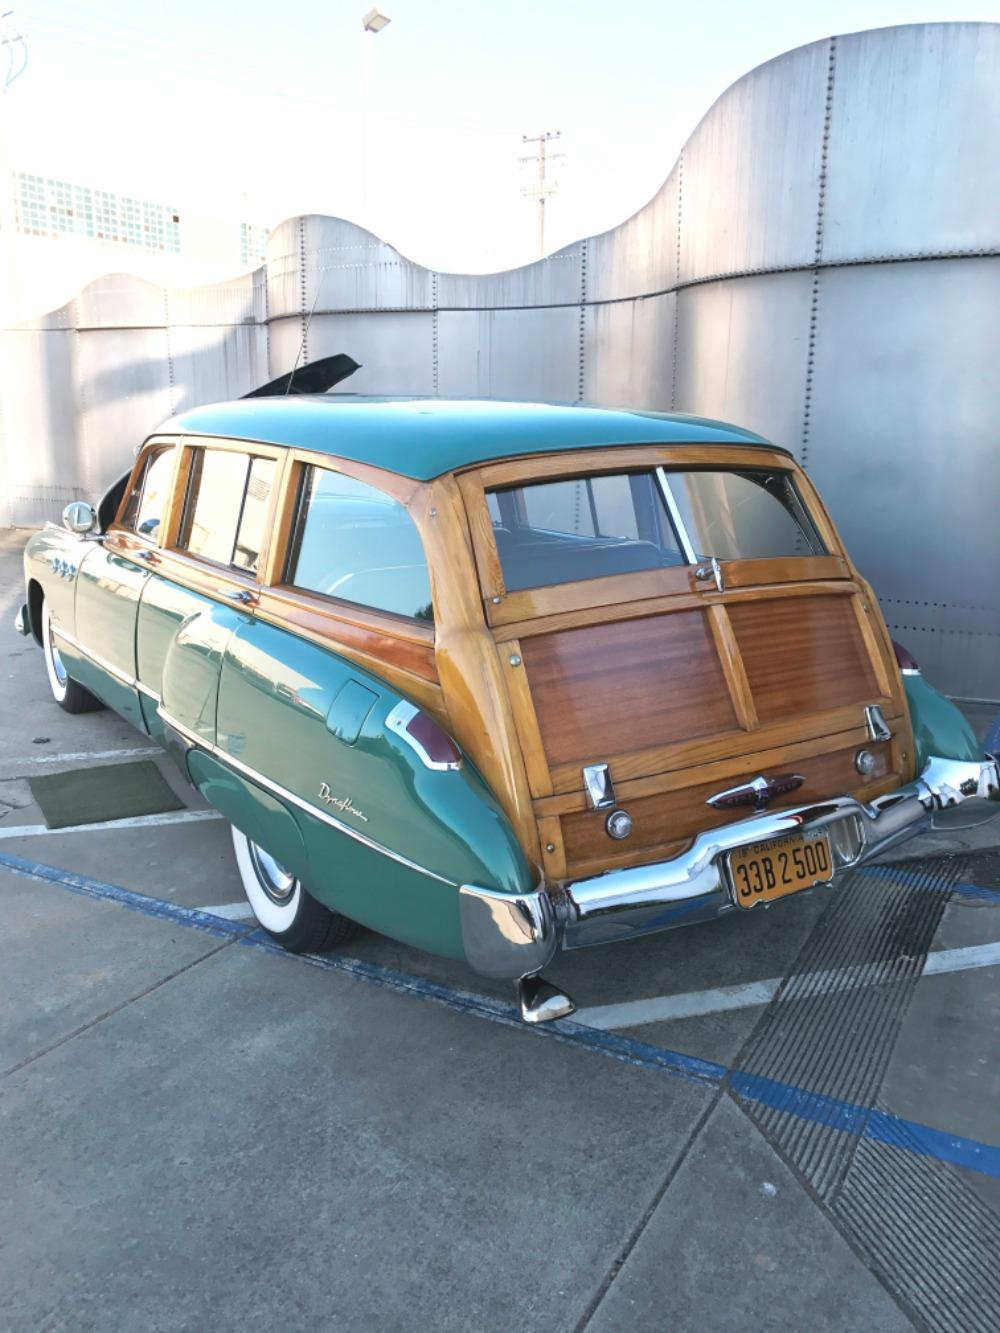 1949 Buick Series 50 -RARE WOODY WAGON- ONLY 653 BUILT-Super Estate Wagon Stock # 849CAMK for sale near Mundelein, IL | IL Buick Dealer #56